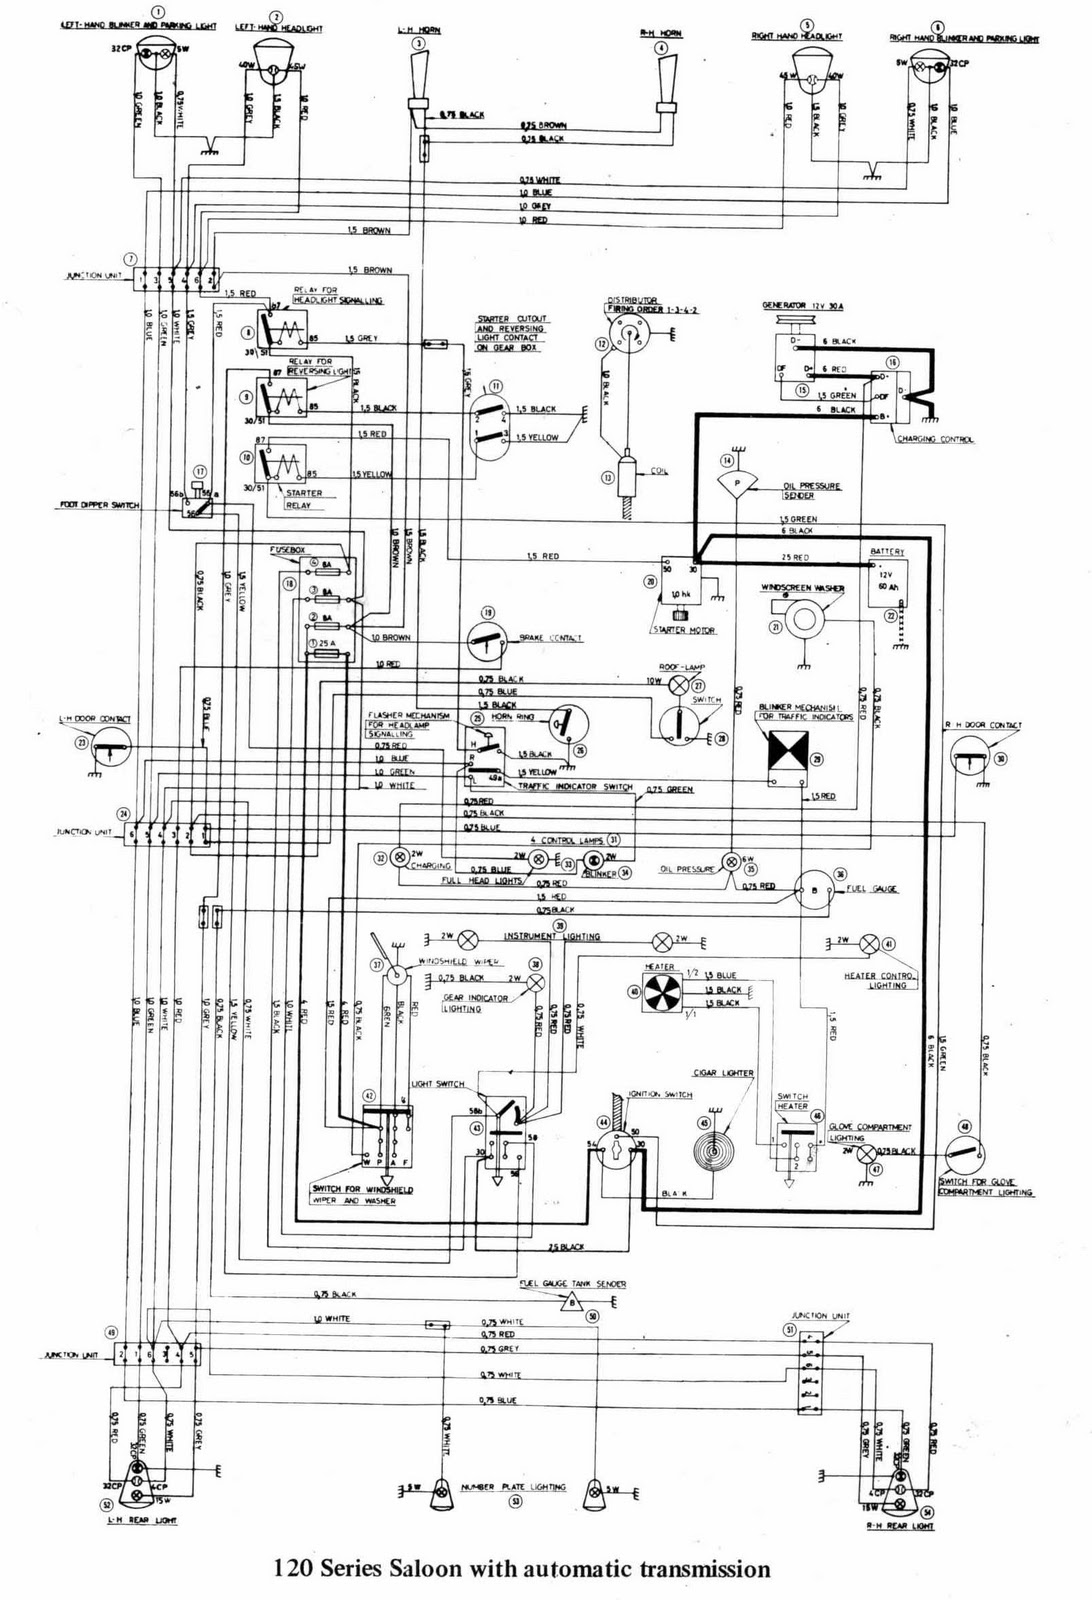 medium resolution of wiring diagram volvo 850 glt 1993 wiring diagrams 1997 volvo 850 parts volvo 850 tail light wiring